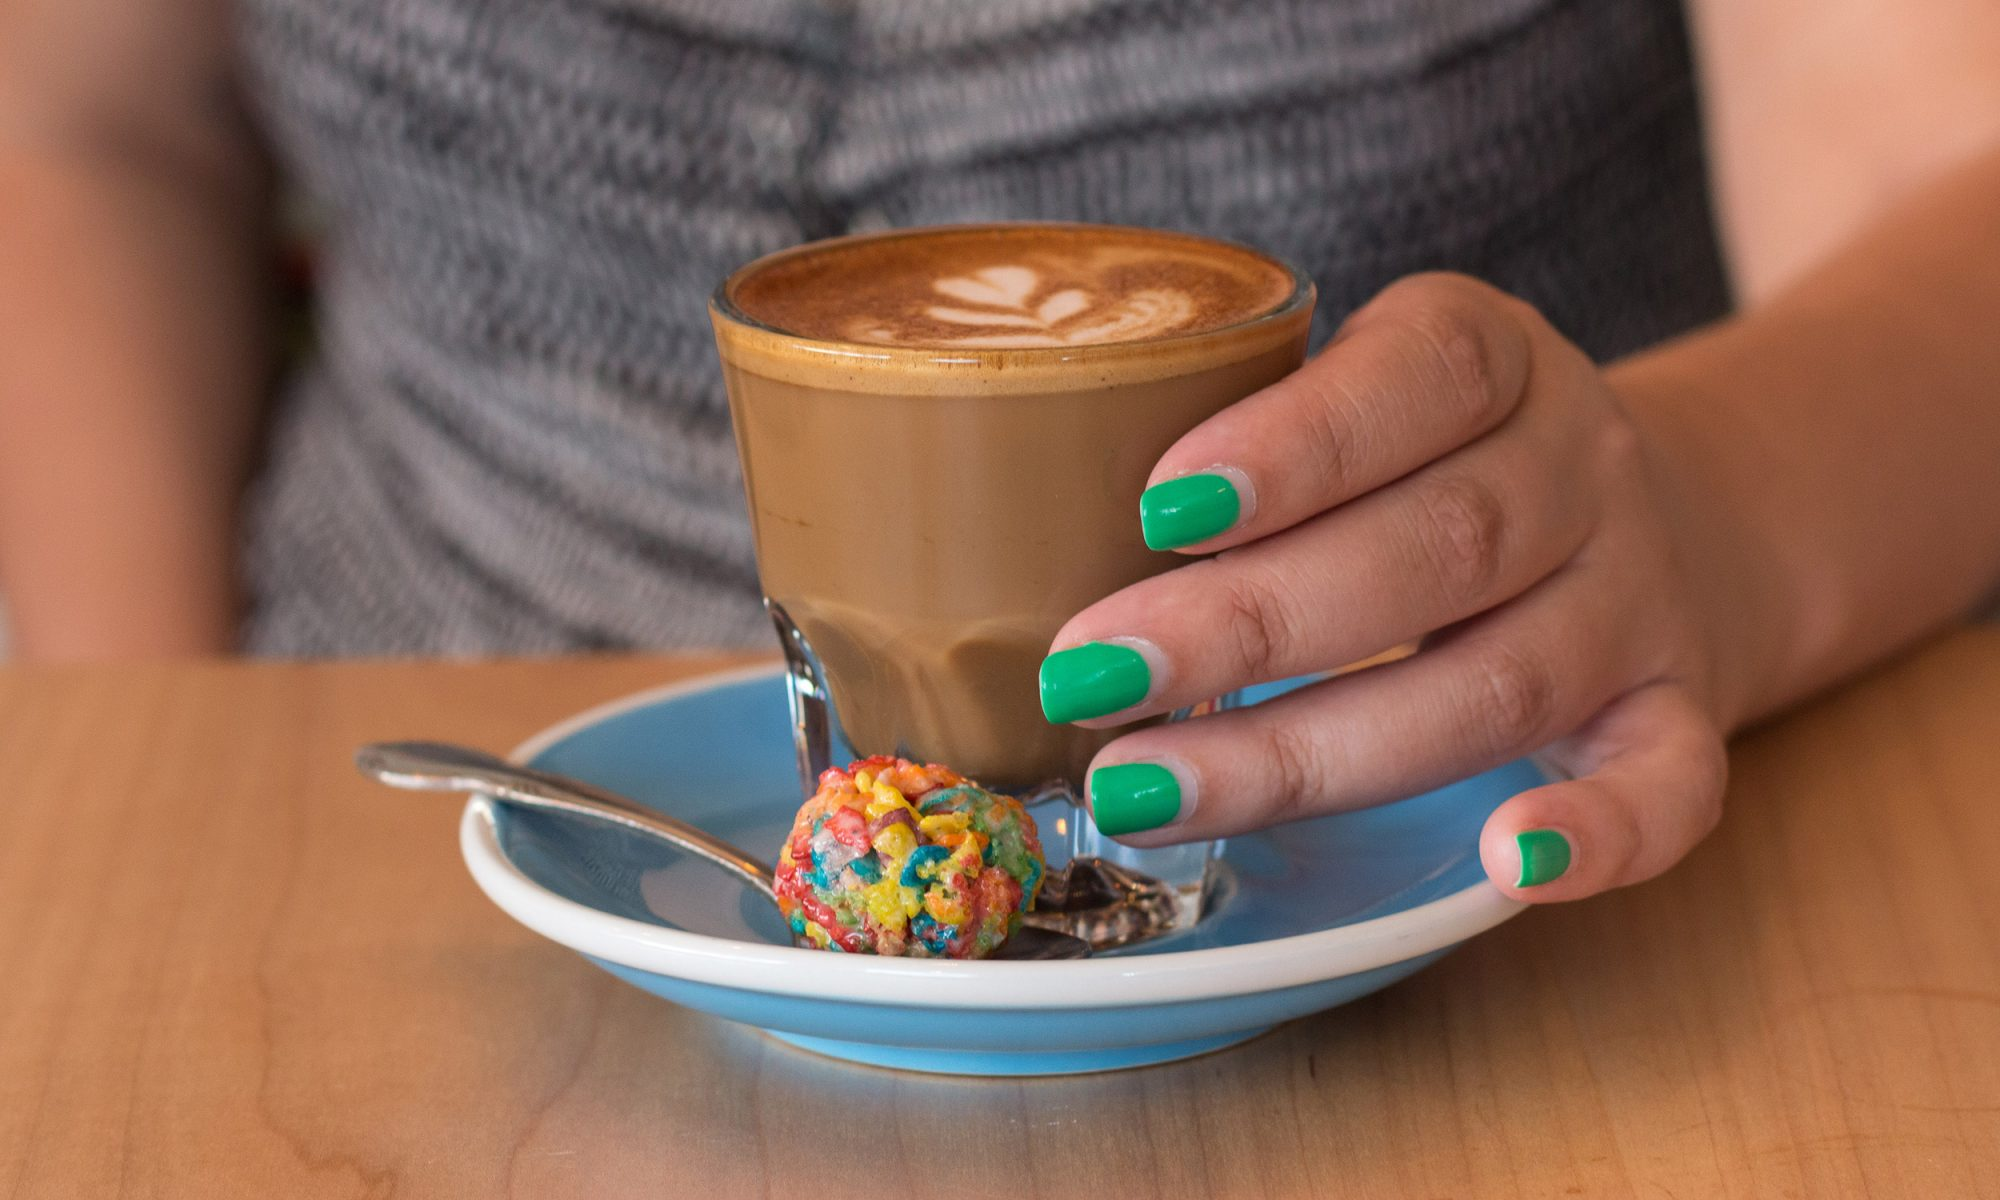 How to Make Fruity Pebbles-Infused Milk for Your Morning Coffee